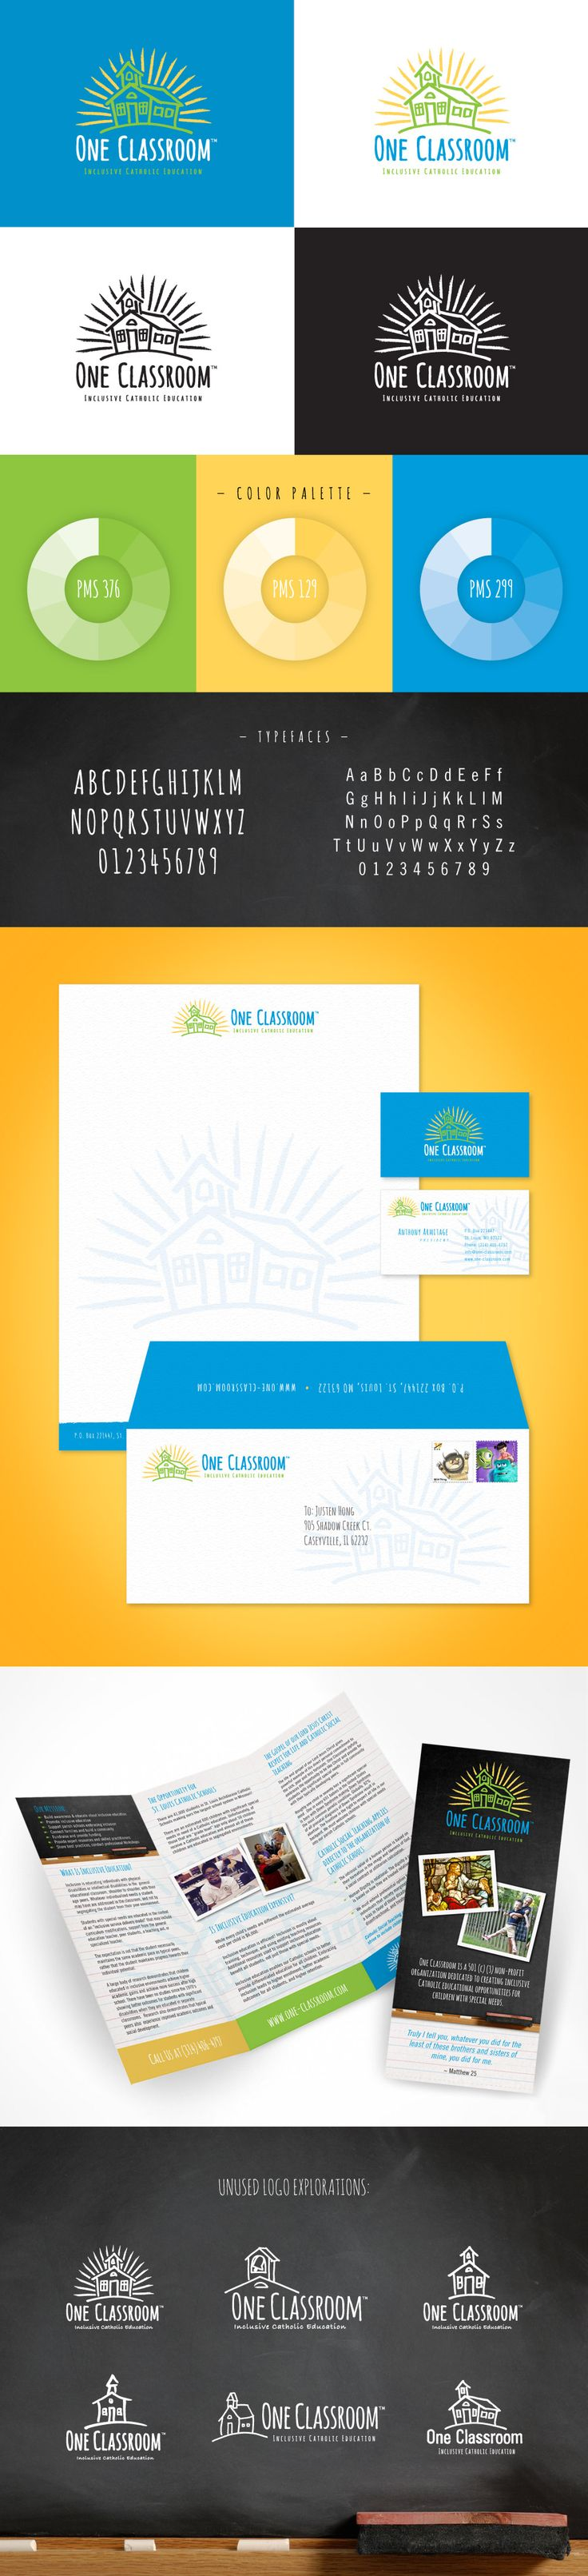 Classroom Logo Design ~ Images about visual lure s design work on pinterest